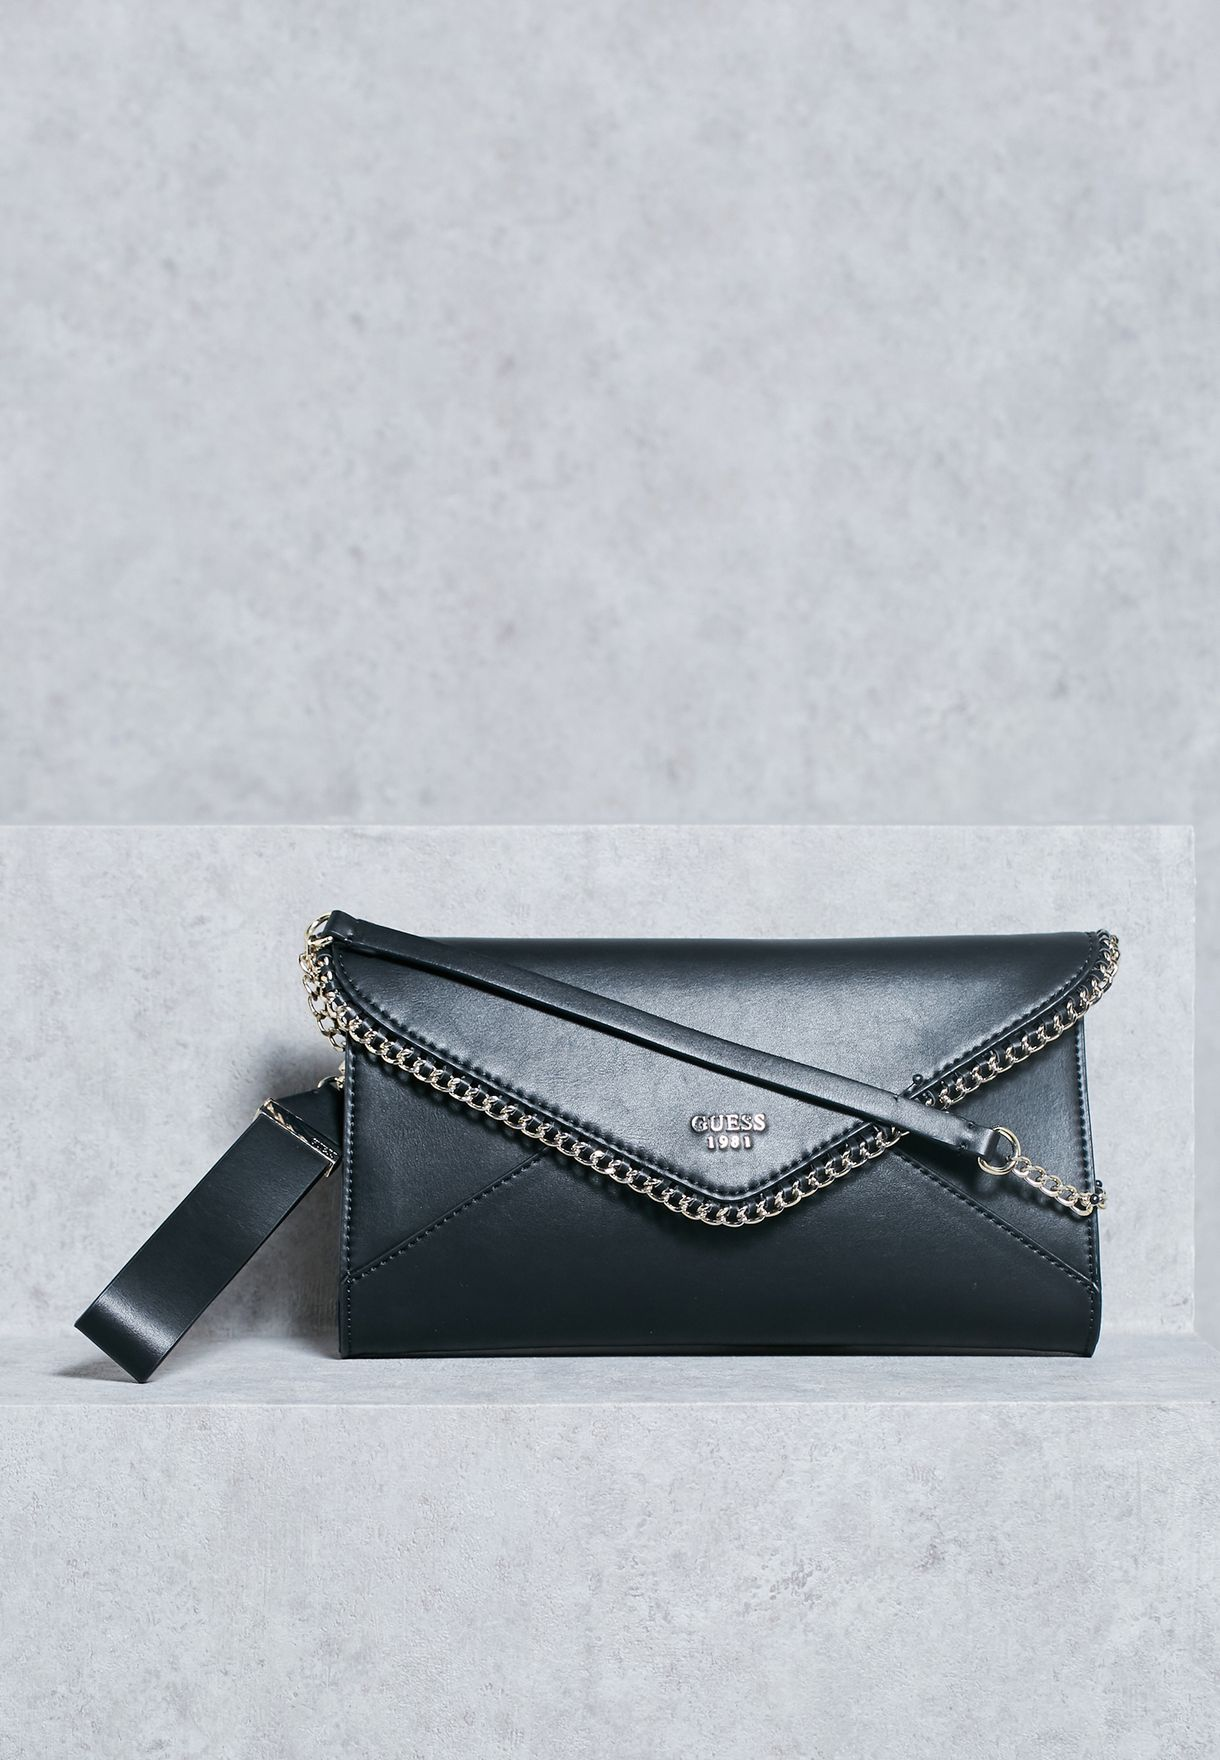 96abfa0e263 Shop Guess black Johanna Envelope Clutch VG662127 for Women in ...